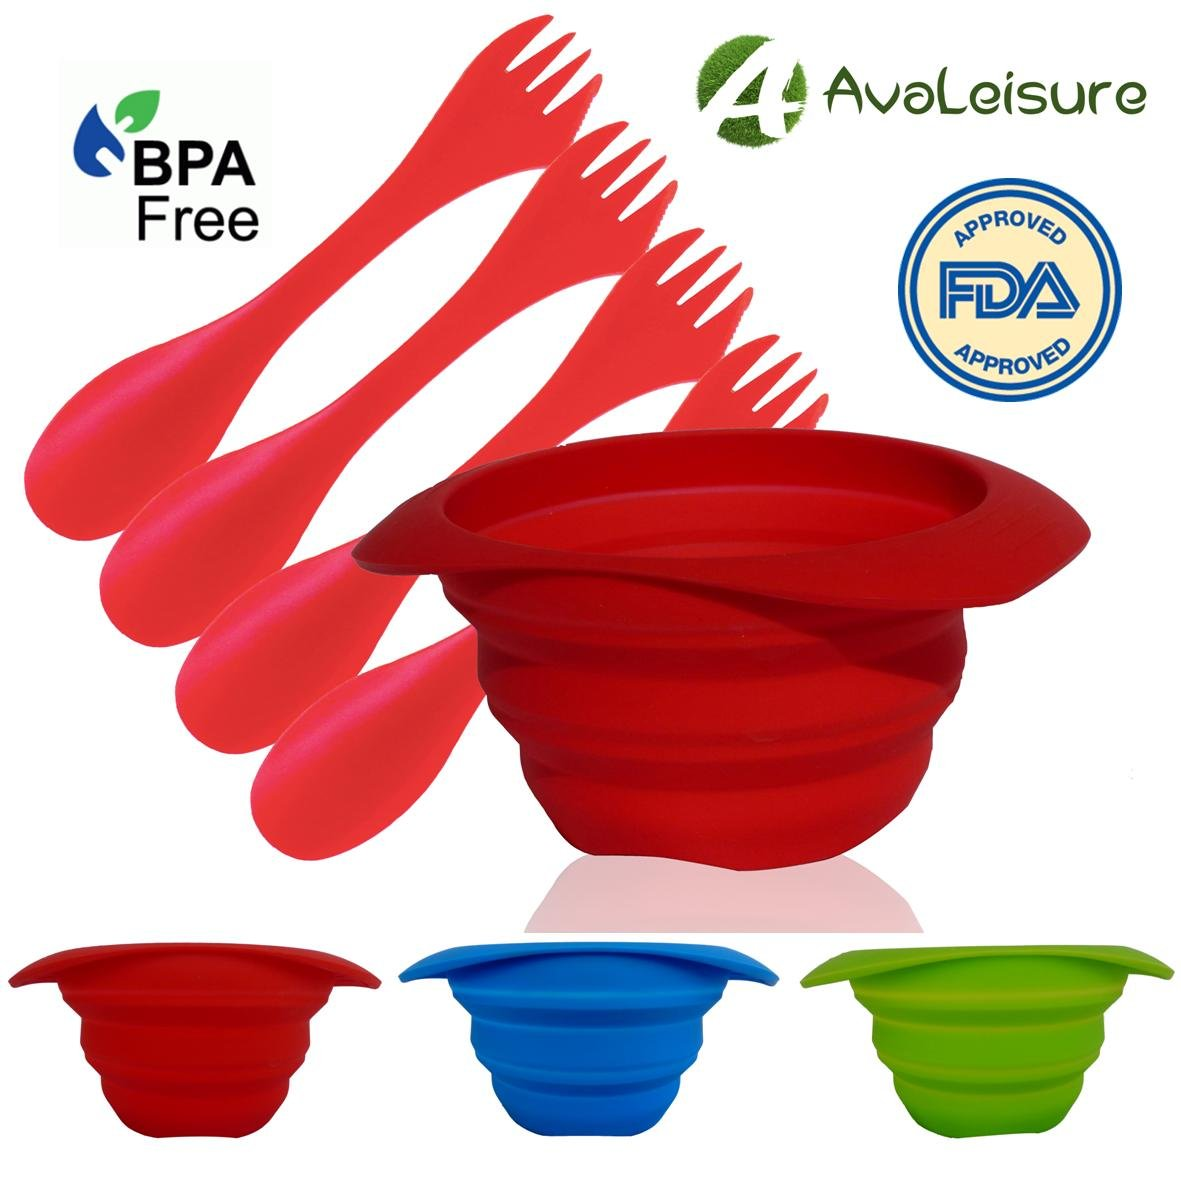 AVALEISURE Collapsibleボウル – 25oz/750ml – Set of 2 Bowlsまたは1ボウルwith 4 Sporks – 理想的なキャンプ、RV、バックパッキング、混合Camp食& – As a Dog Food &水ボウル – BPAフリー、省スペース B076HGRS4C レッド レッド